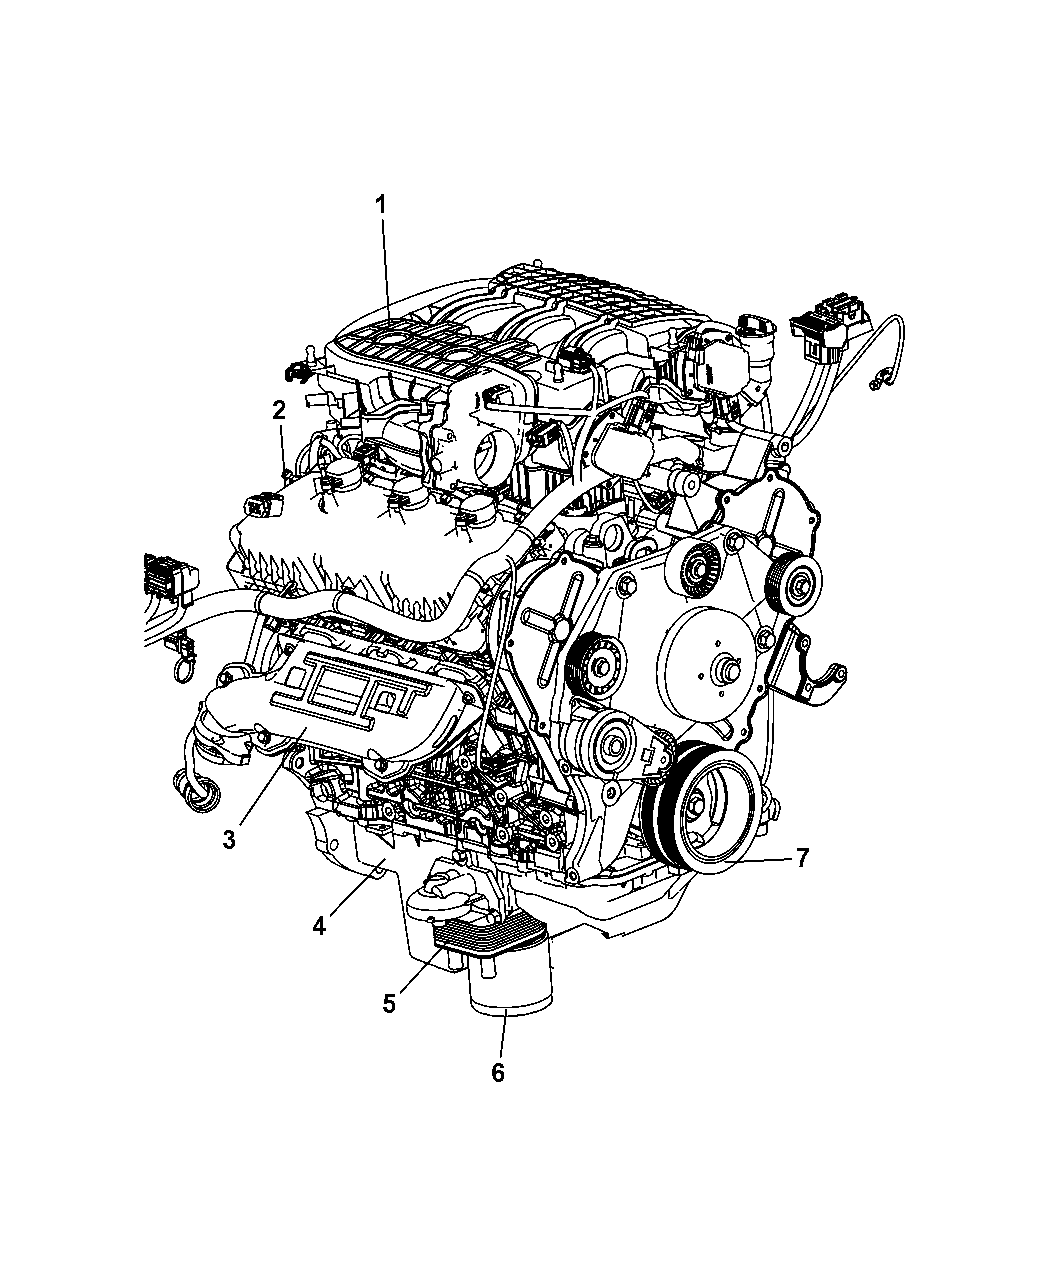 2007 Dodge Nitro Engine Assembly & Identification - Thumbnail 1